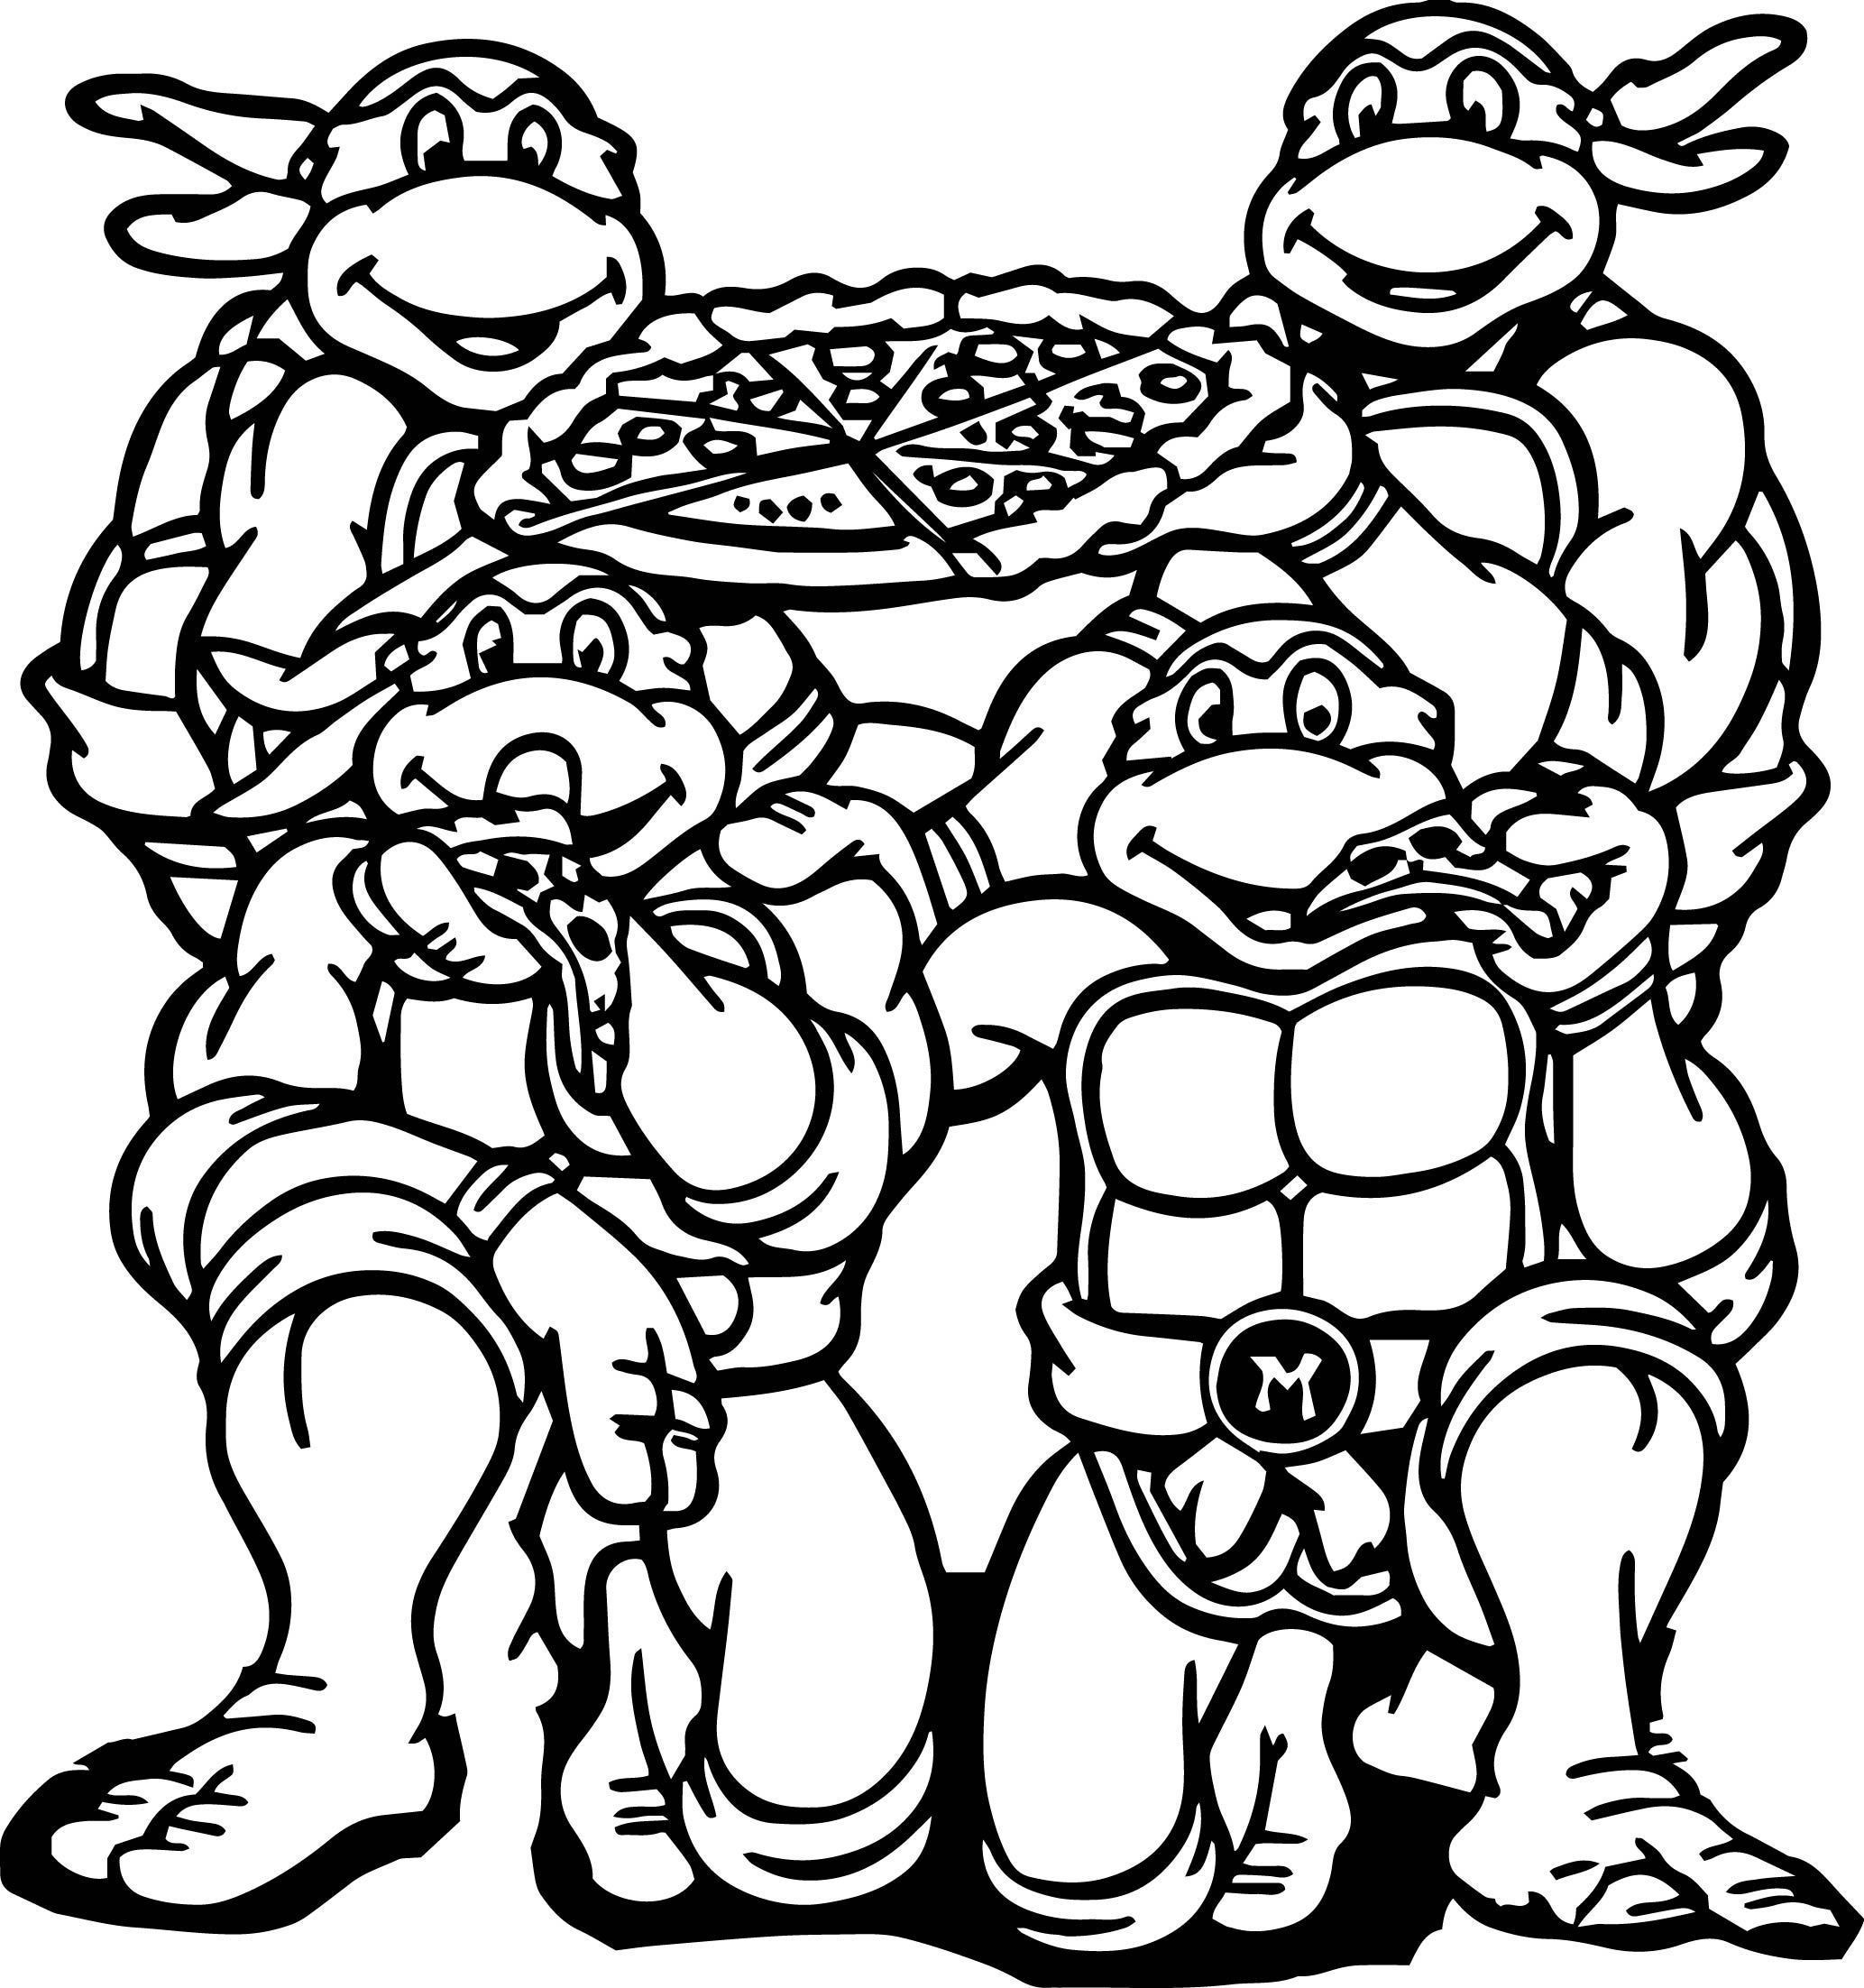 ninja turtles colouring pictures to print teenage mutant ninja turtles coloring pages best ninja print colouring turtles to pictures